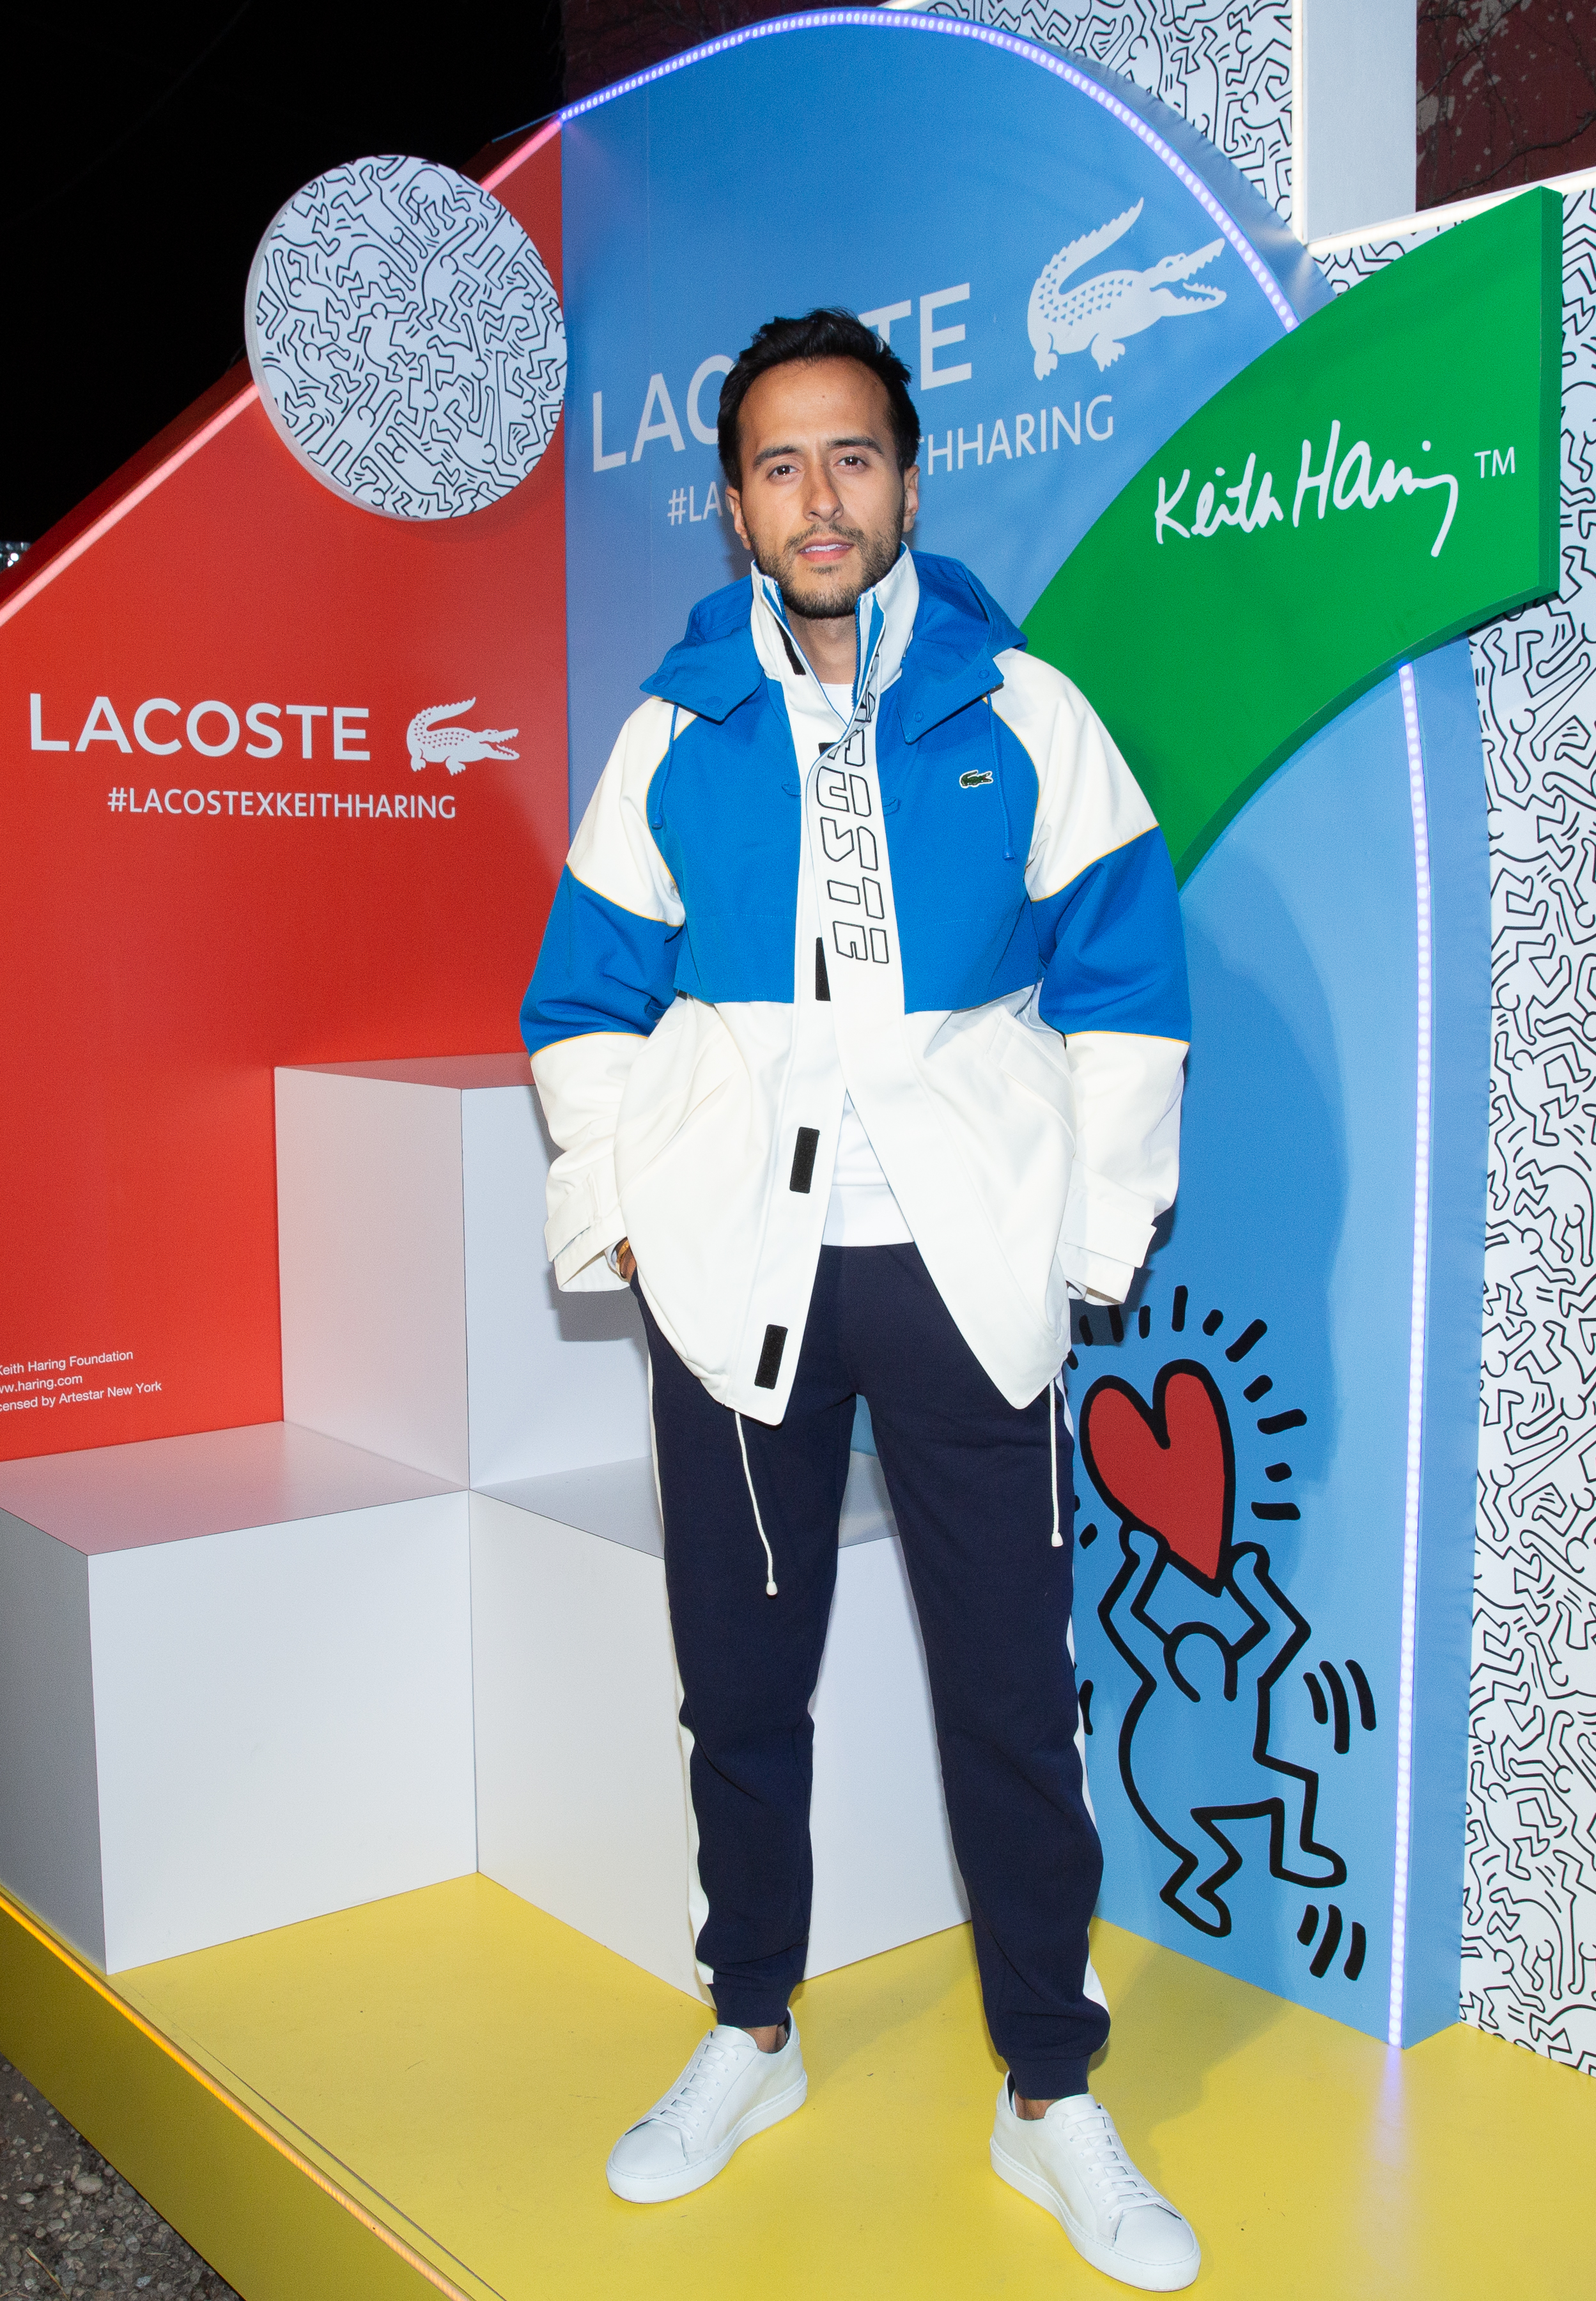 Moti Ankari attends The Lacoste x Keith Haring Global Launch Party at Pioneer Works on Tuesday, March 26th, 2019. Photographed by Max Lakner/BFA.